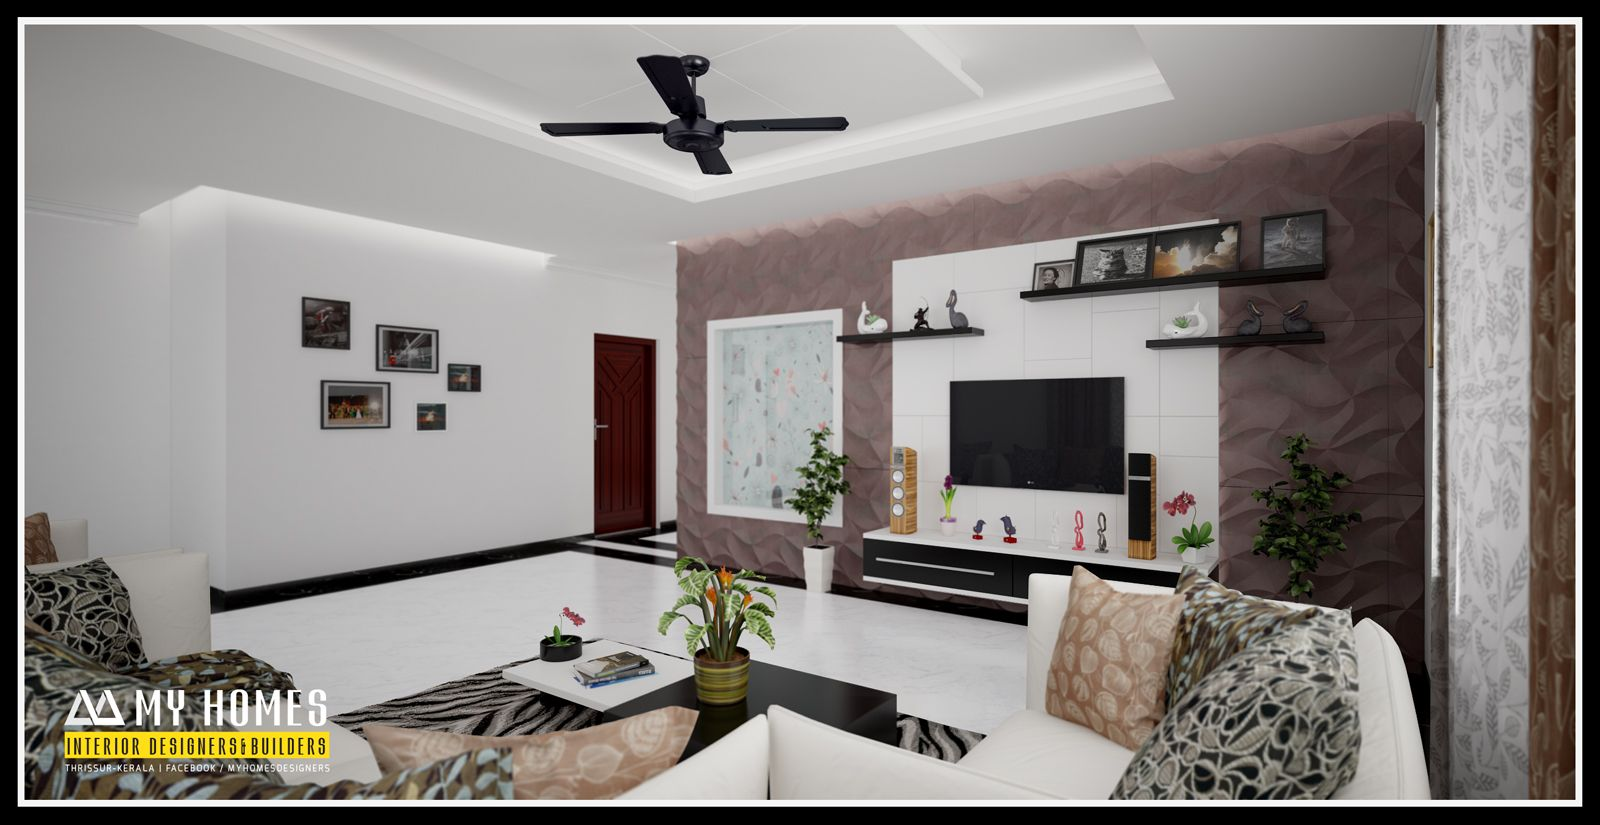 Living Room Designs Kerala Homes kerala living room designs present trendy designs for creating an